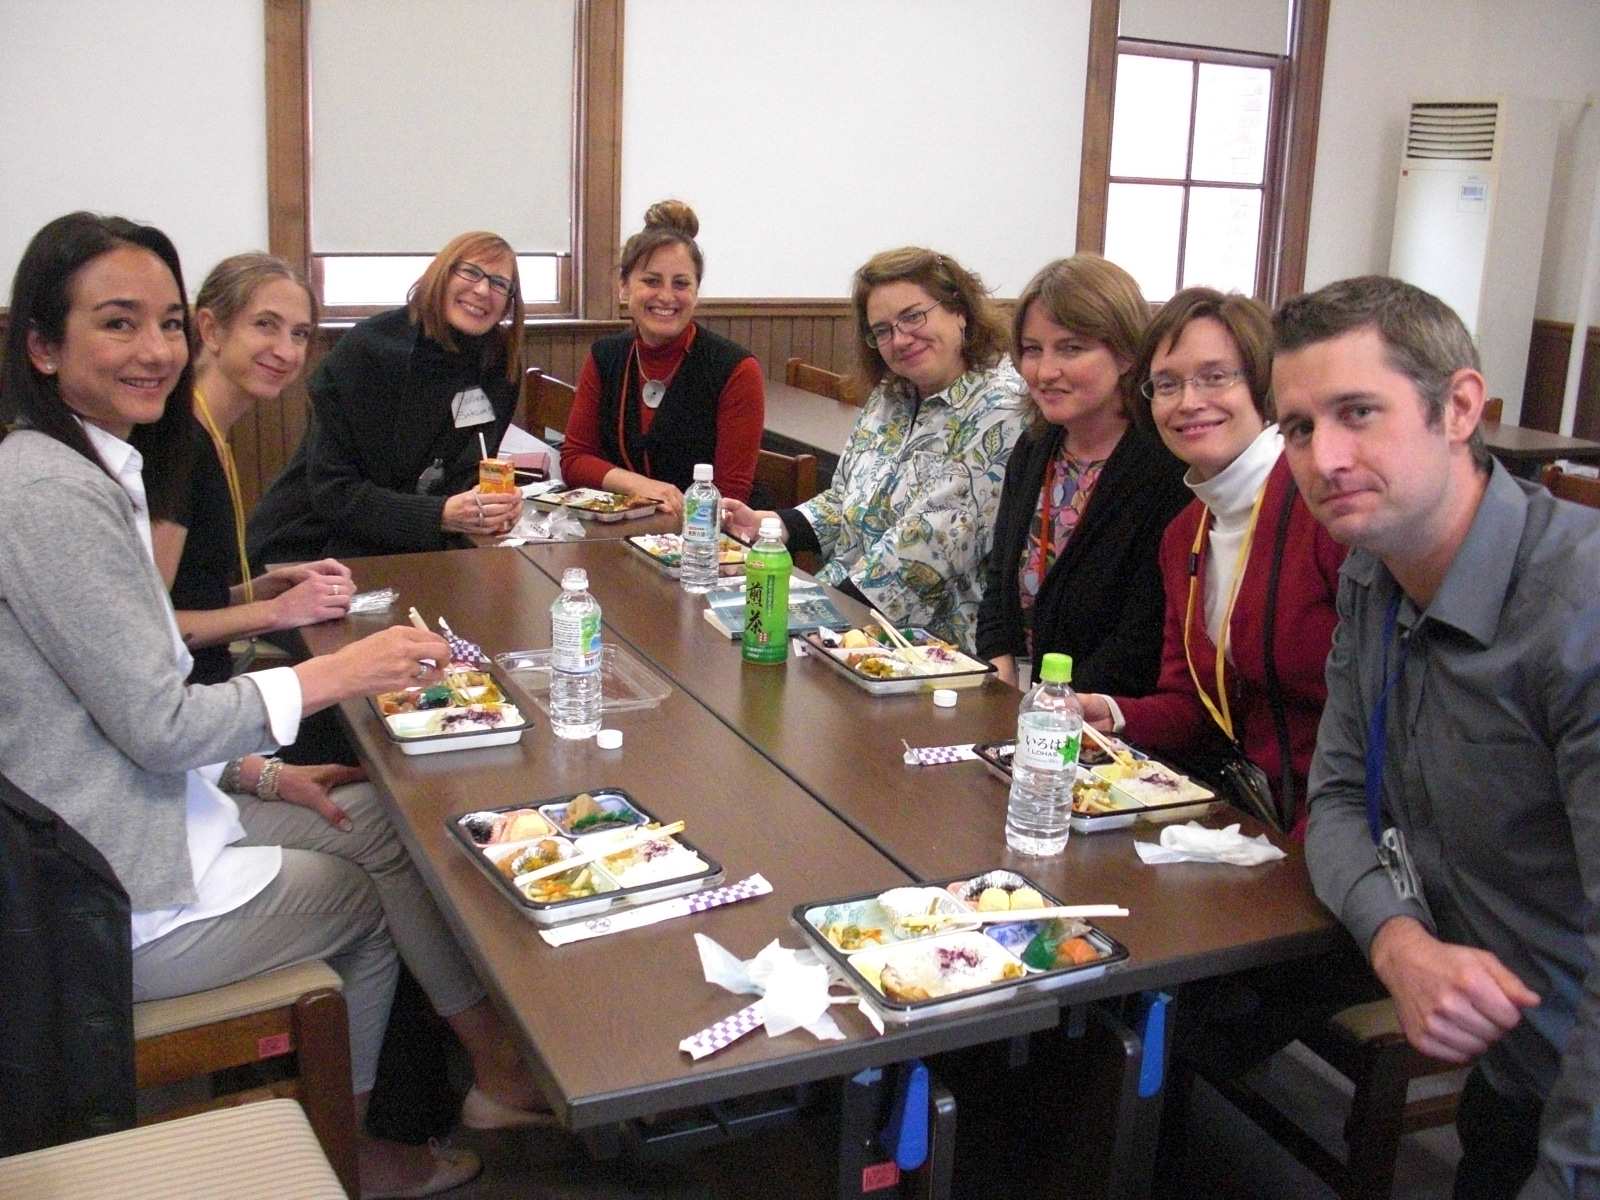 SCBWI meeting at the Japan Writers Conference, Kyoto